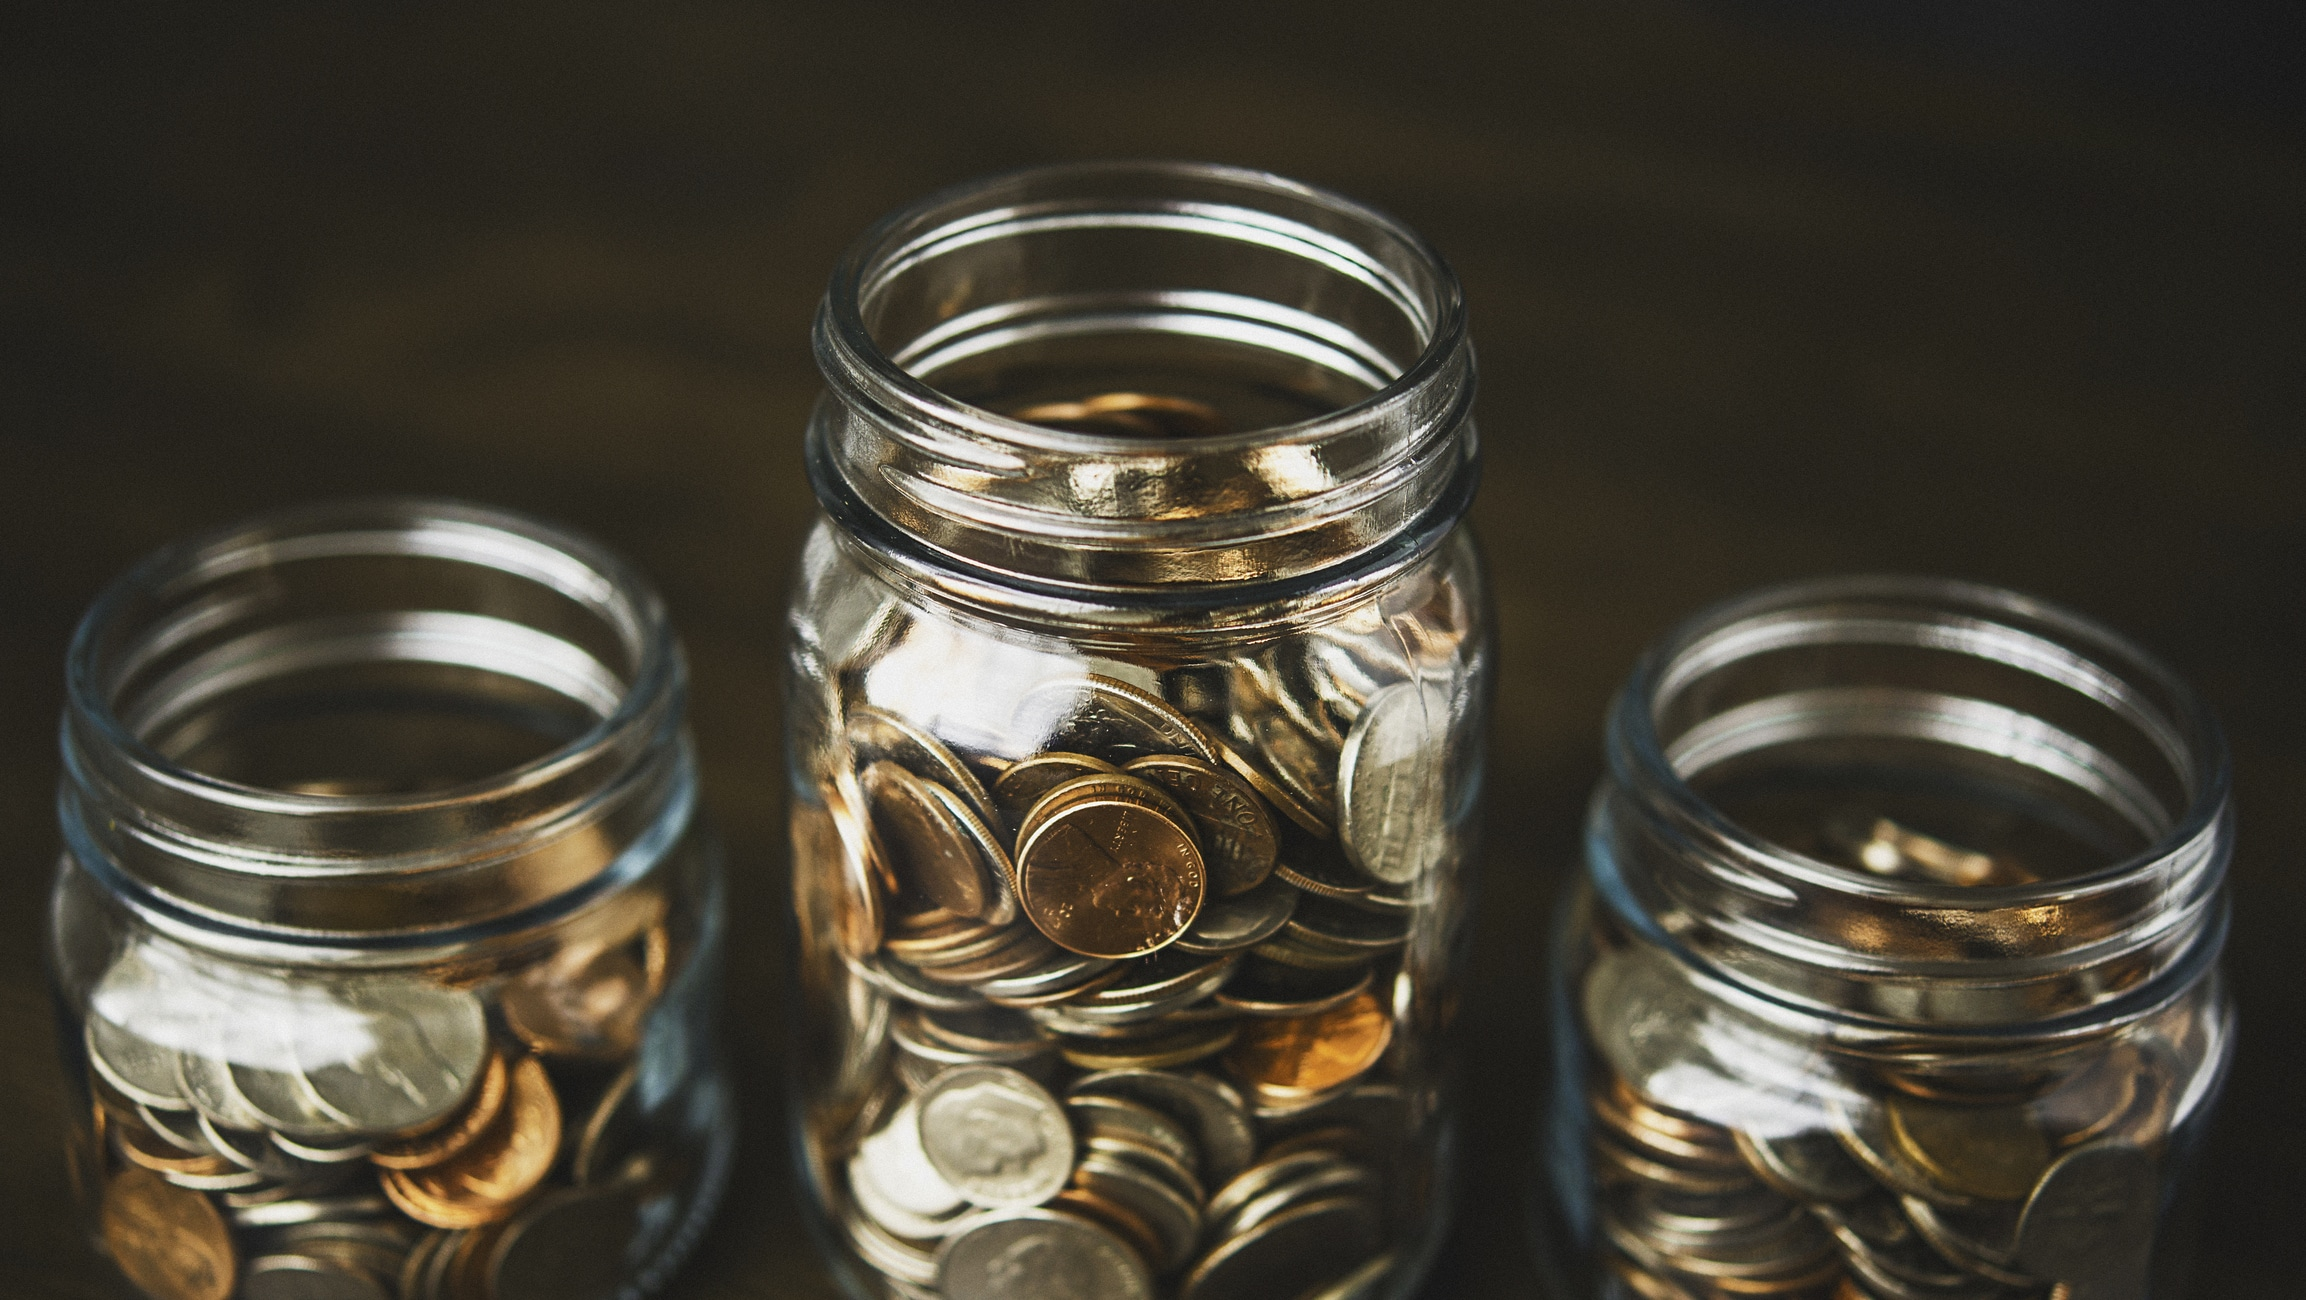 Money Jars Filled With American Currency Savings And Donations Concept Et Planning Corporation